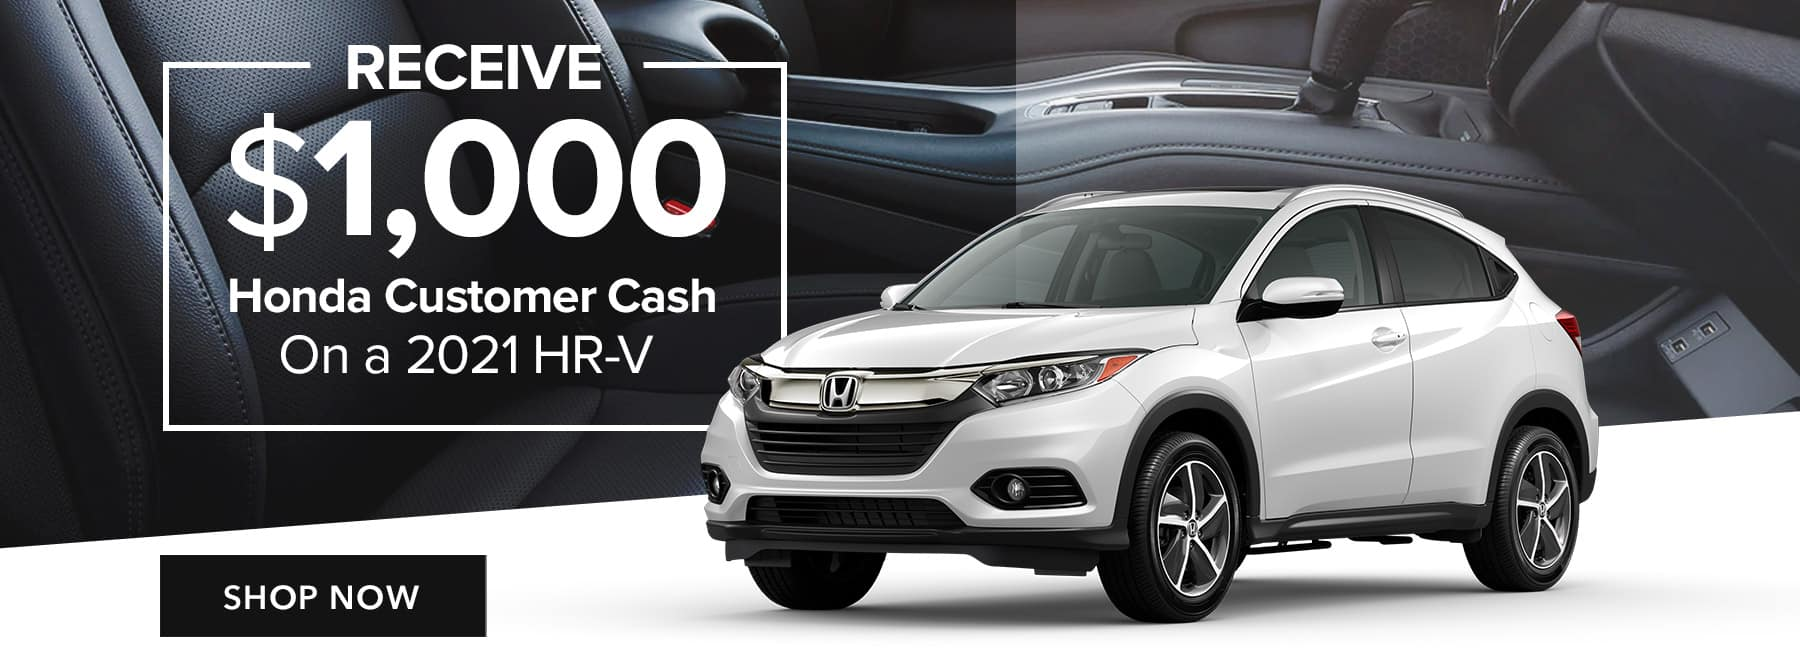 Receive $1,000 Honda Customer Cash on HR-V